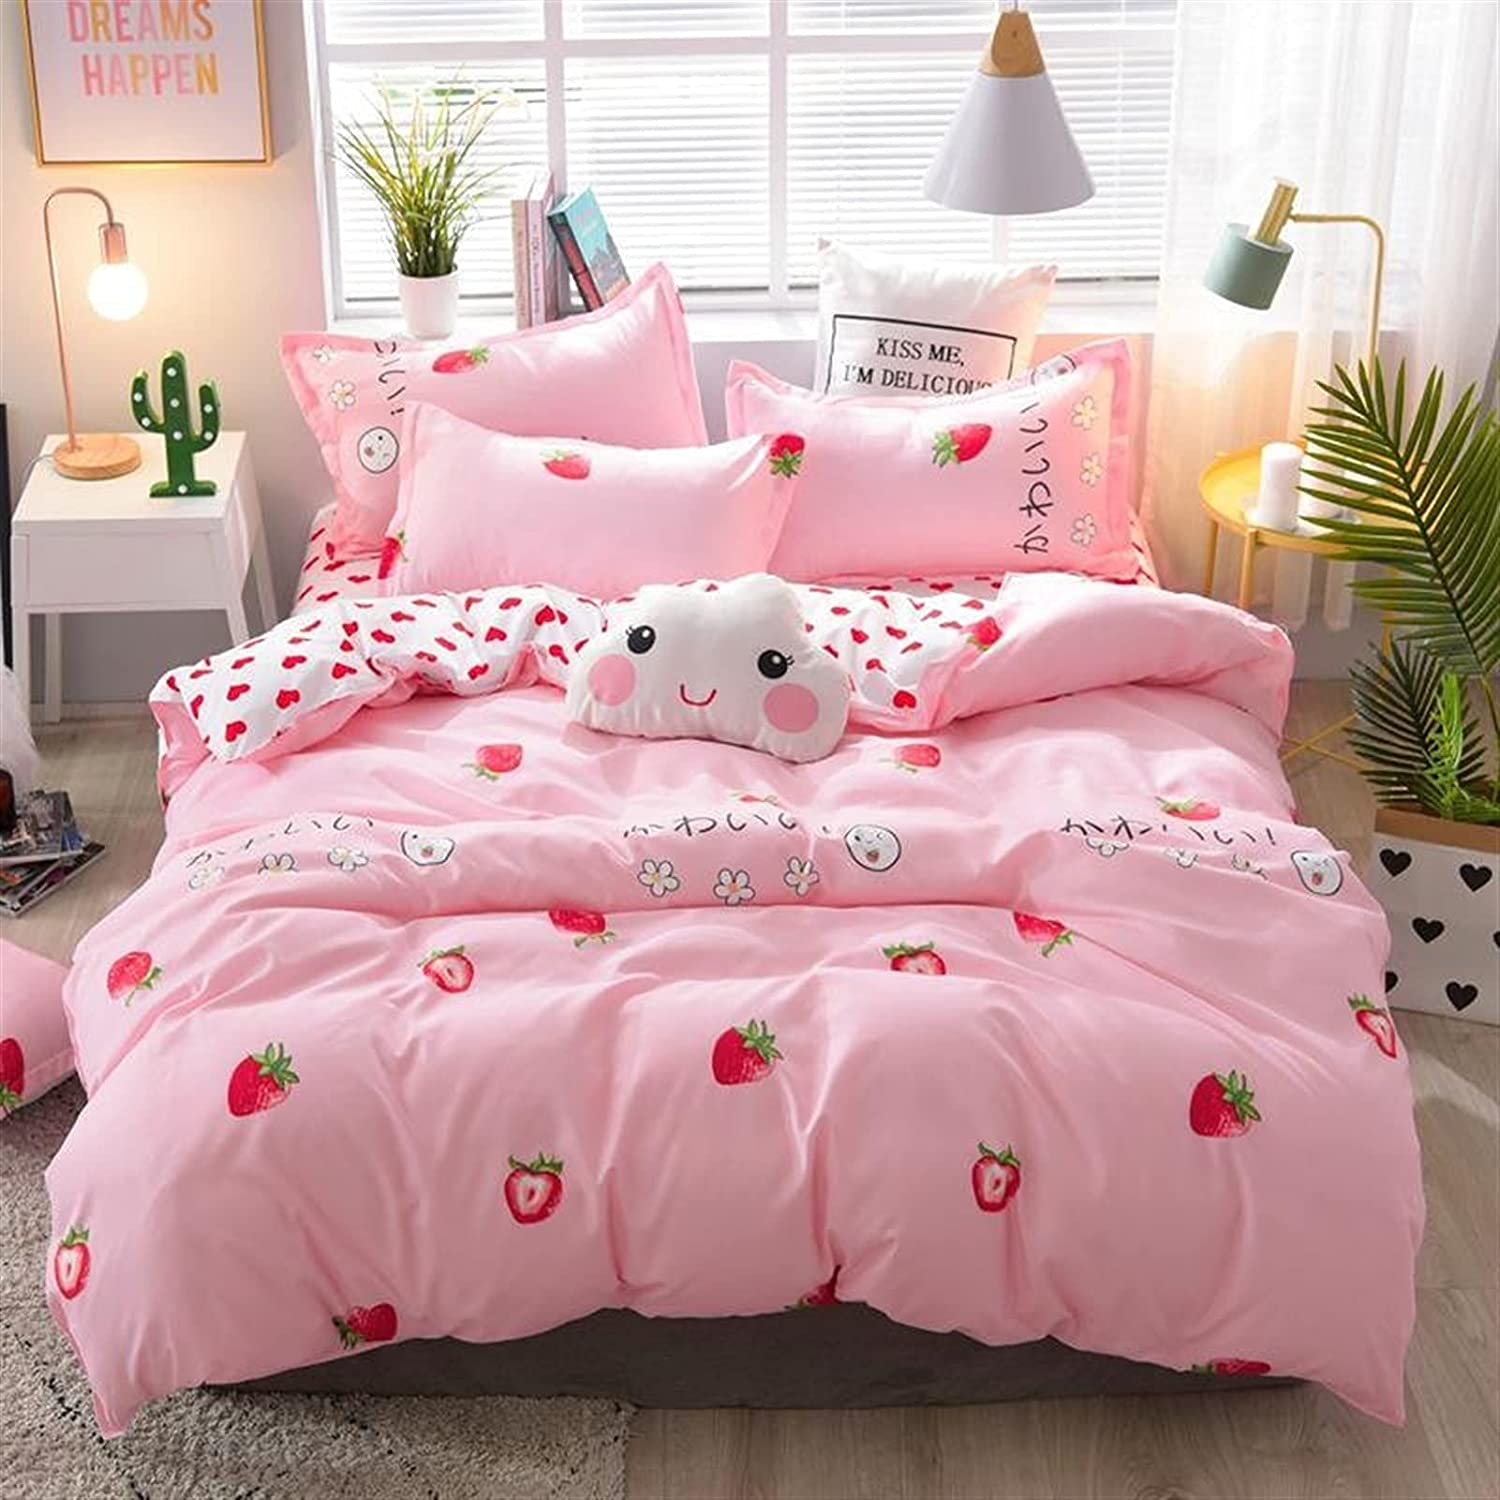 Max 65% OFF Discount mail order LUBINGT Quilt Pink Strawberry Cute Bedding B Queen Set Size King